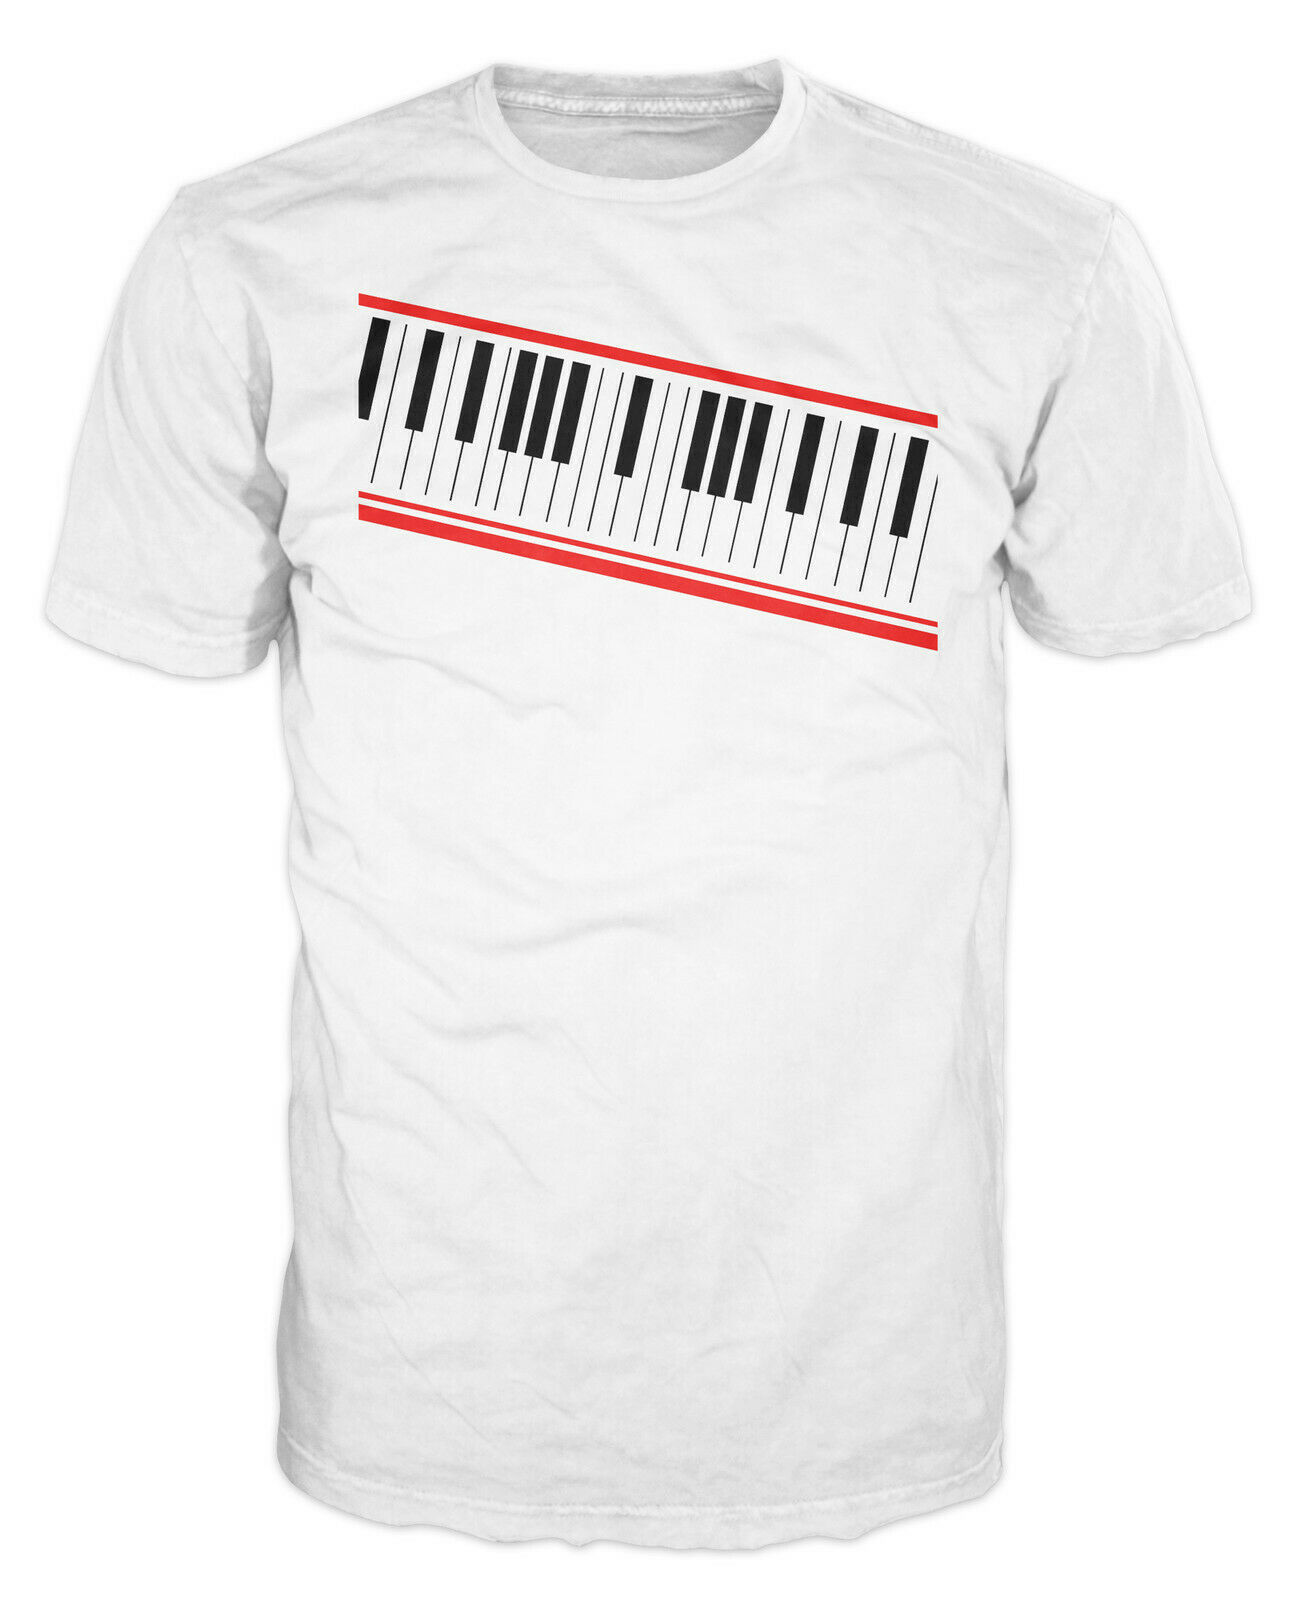 Digital Piano Keyboard 80s 90s Synth Music Michael Jackson T-shirt image